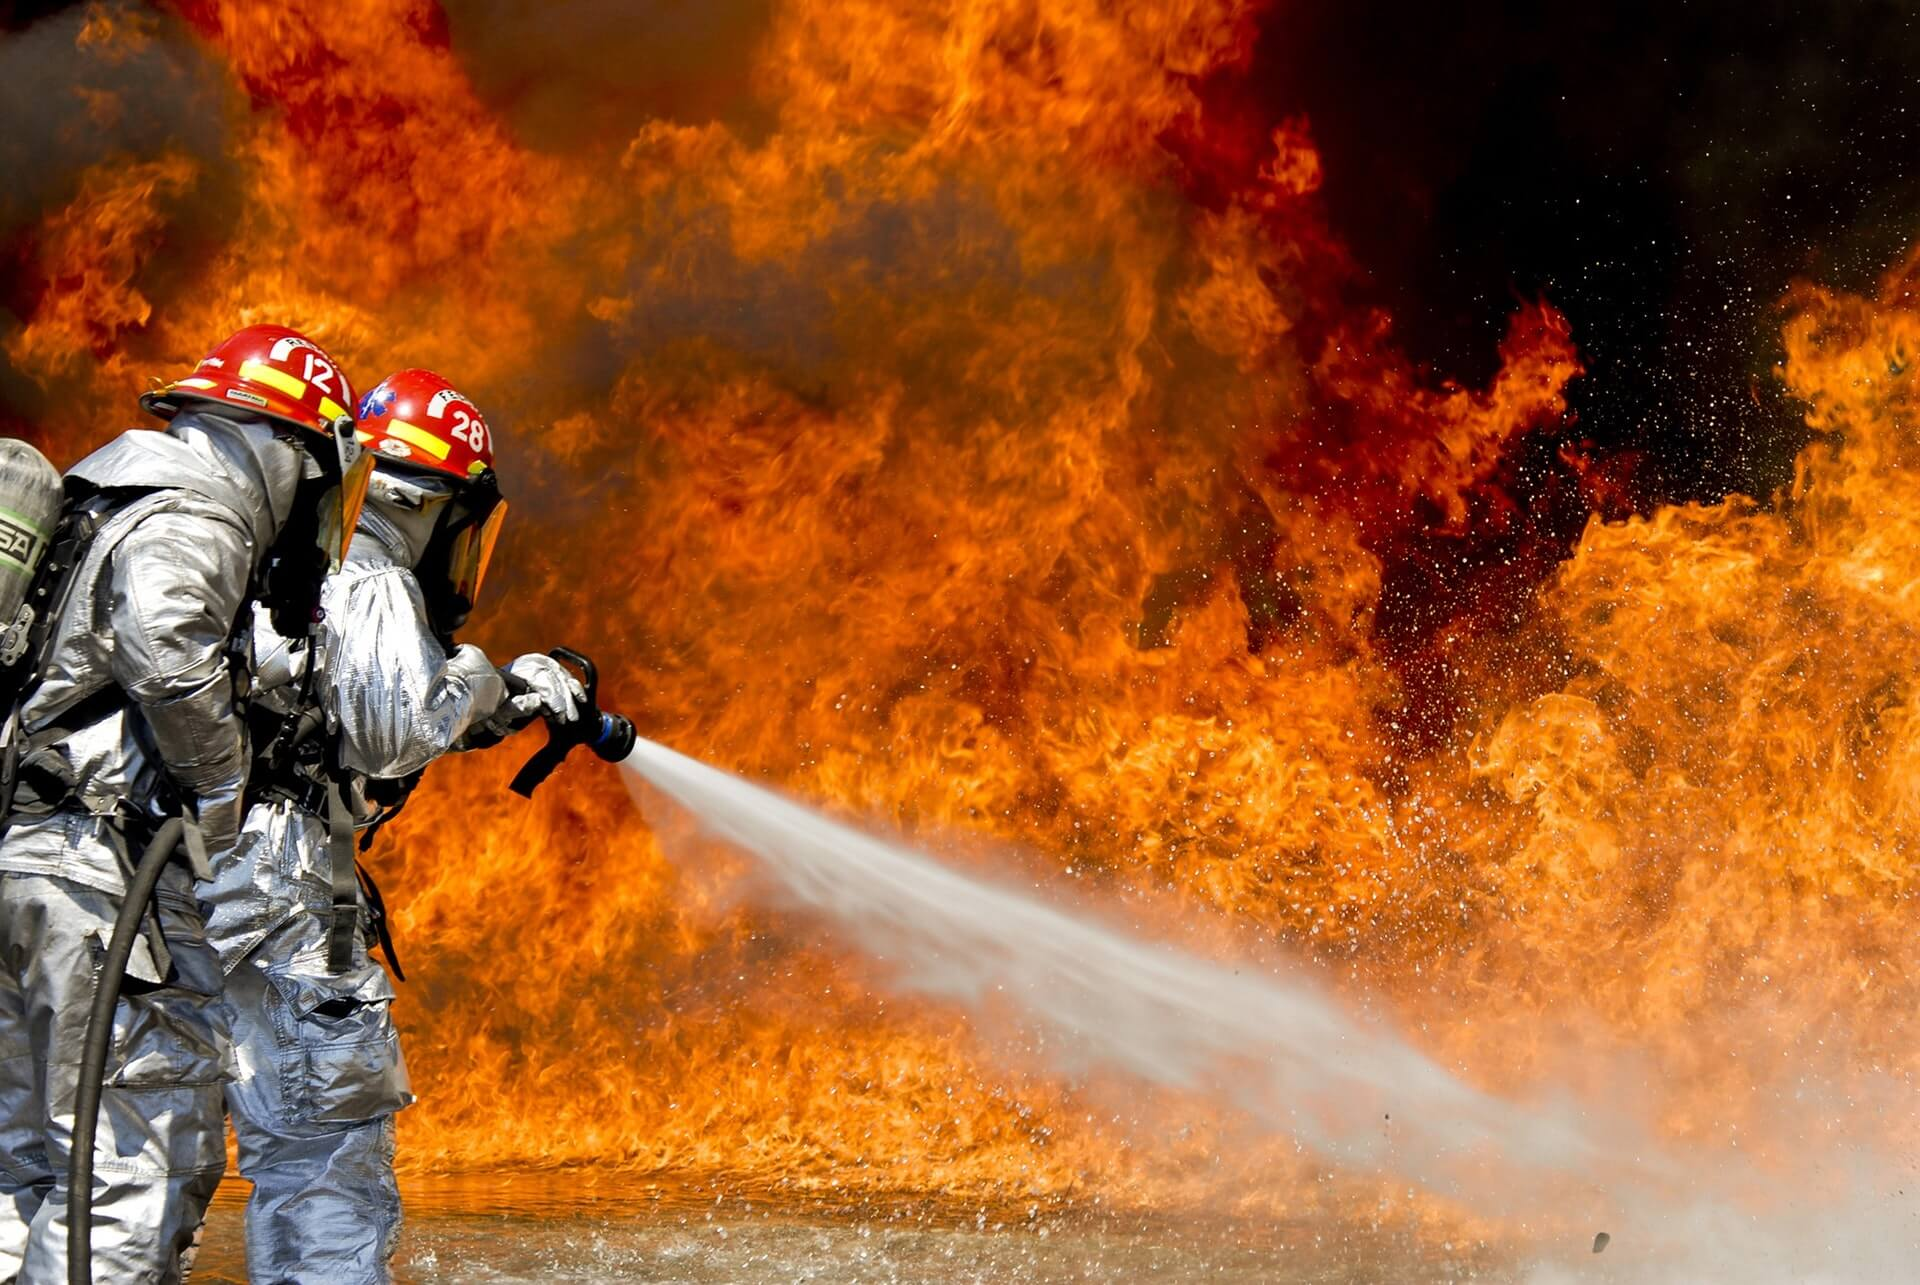 What Goes into a Construction Fire Safety Plan?